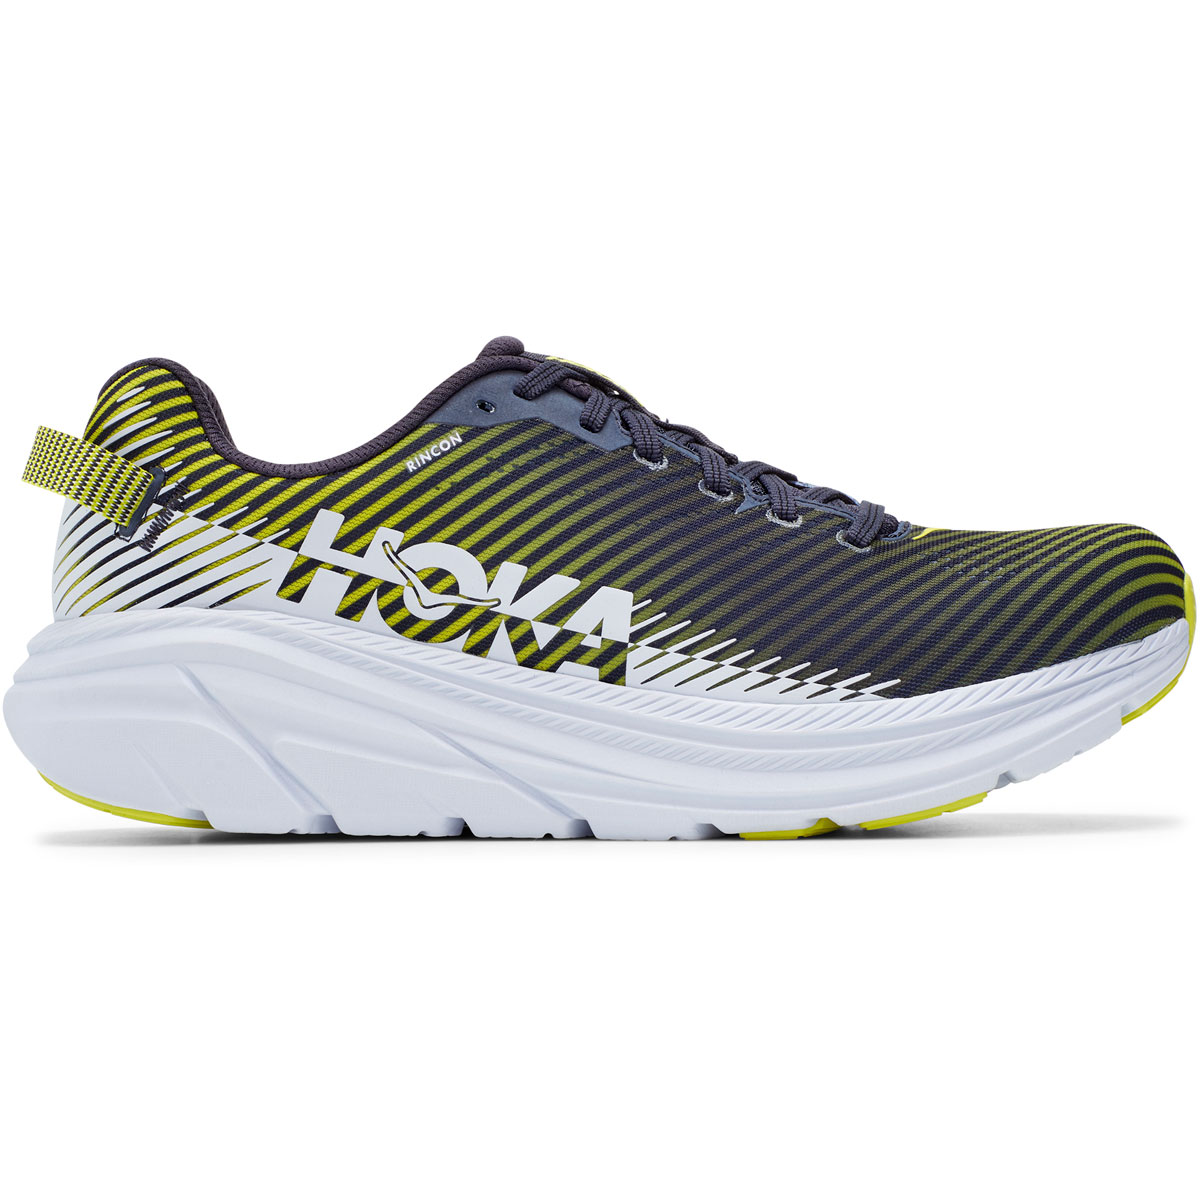 Men's Hoka One One Rincon 2 Running Shoe - Color: Odyssey Grey - Size: 10 - Width: Regular, Odyssey Grey, large, image 1